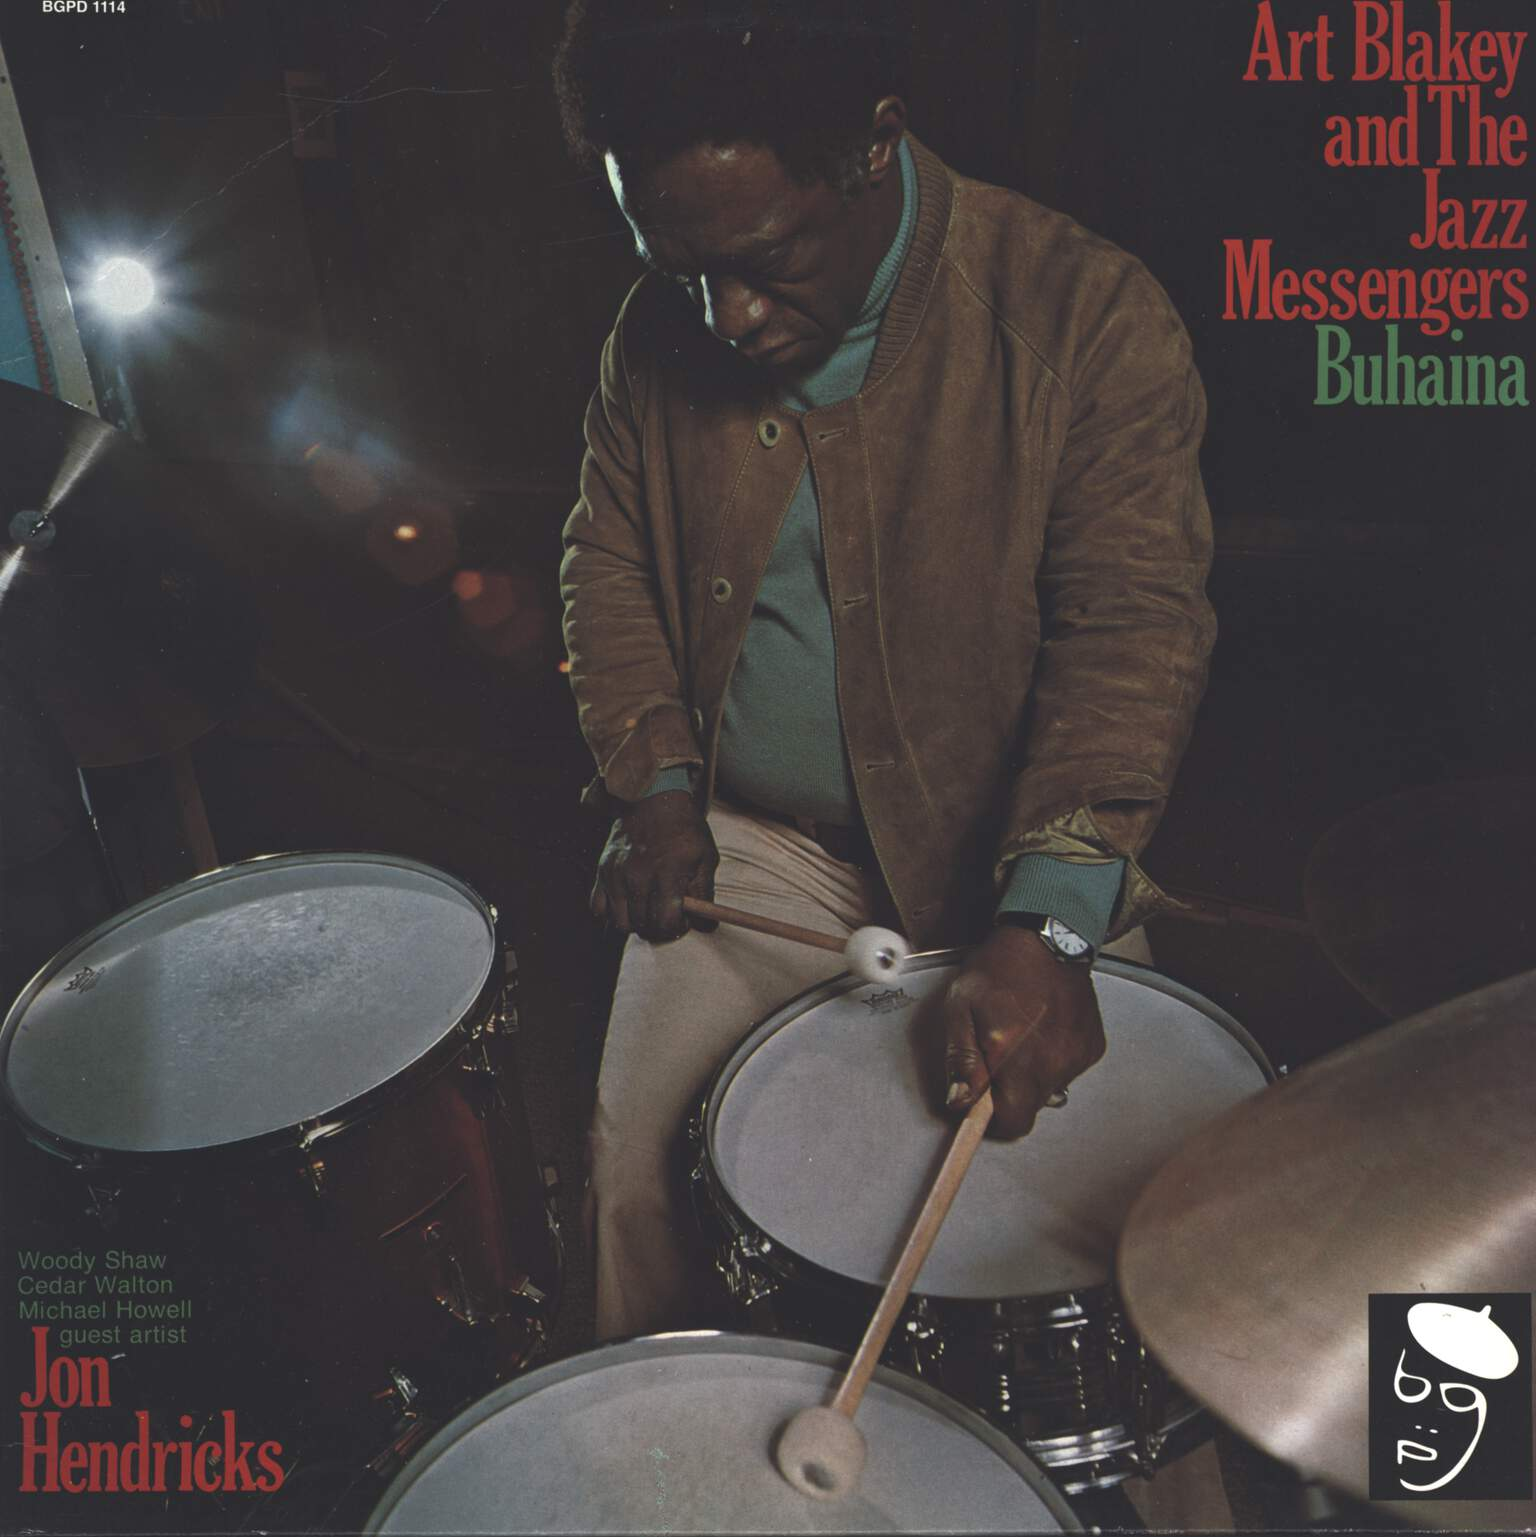 Art Blakey & The Jazz Messengers: Buhaina, LP (Vinyl)